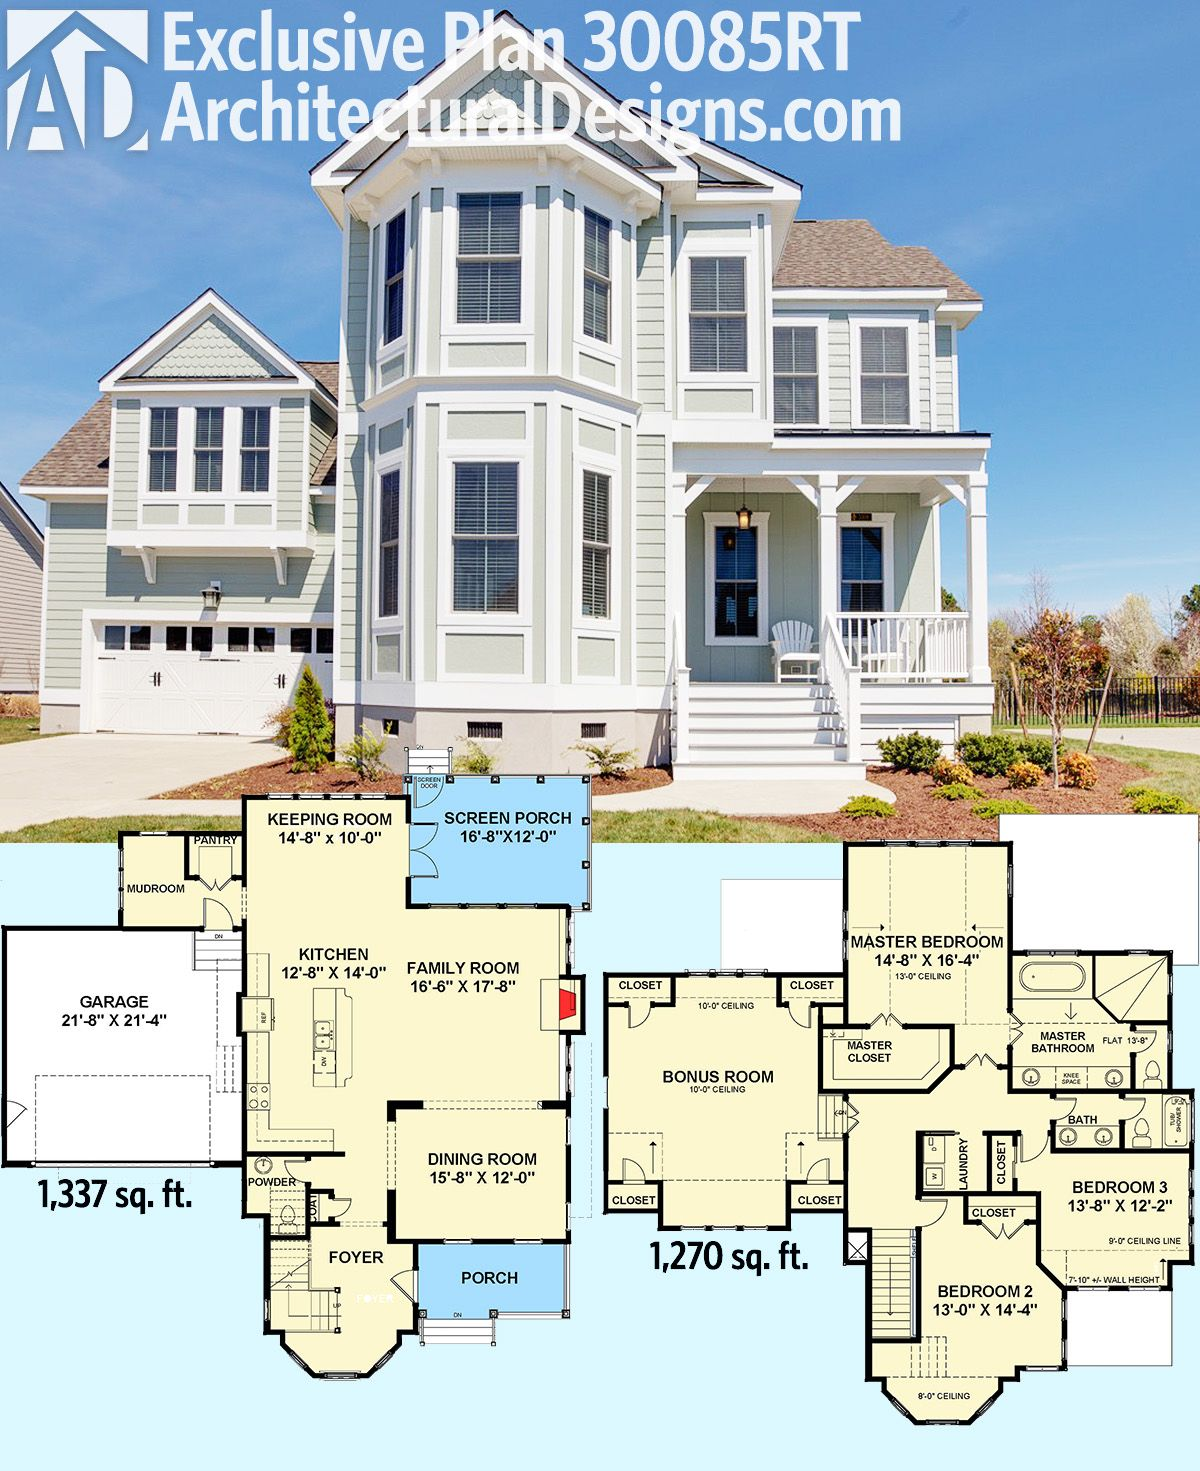 Plan 30085rt Exclusive Victorian With Bay Windows Victorian House Plans Luxury Floor Plans House Plans Mansion